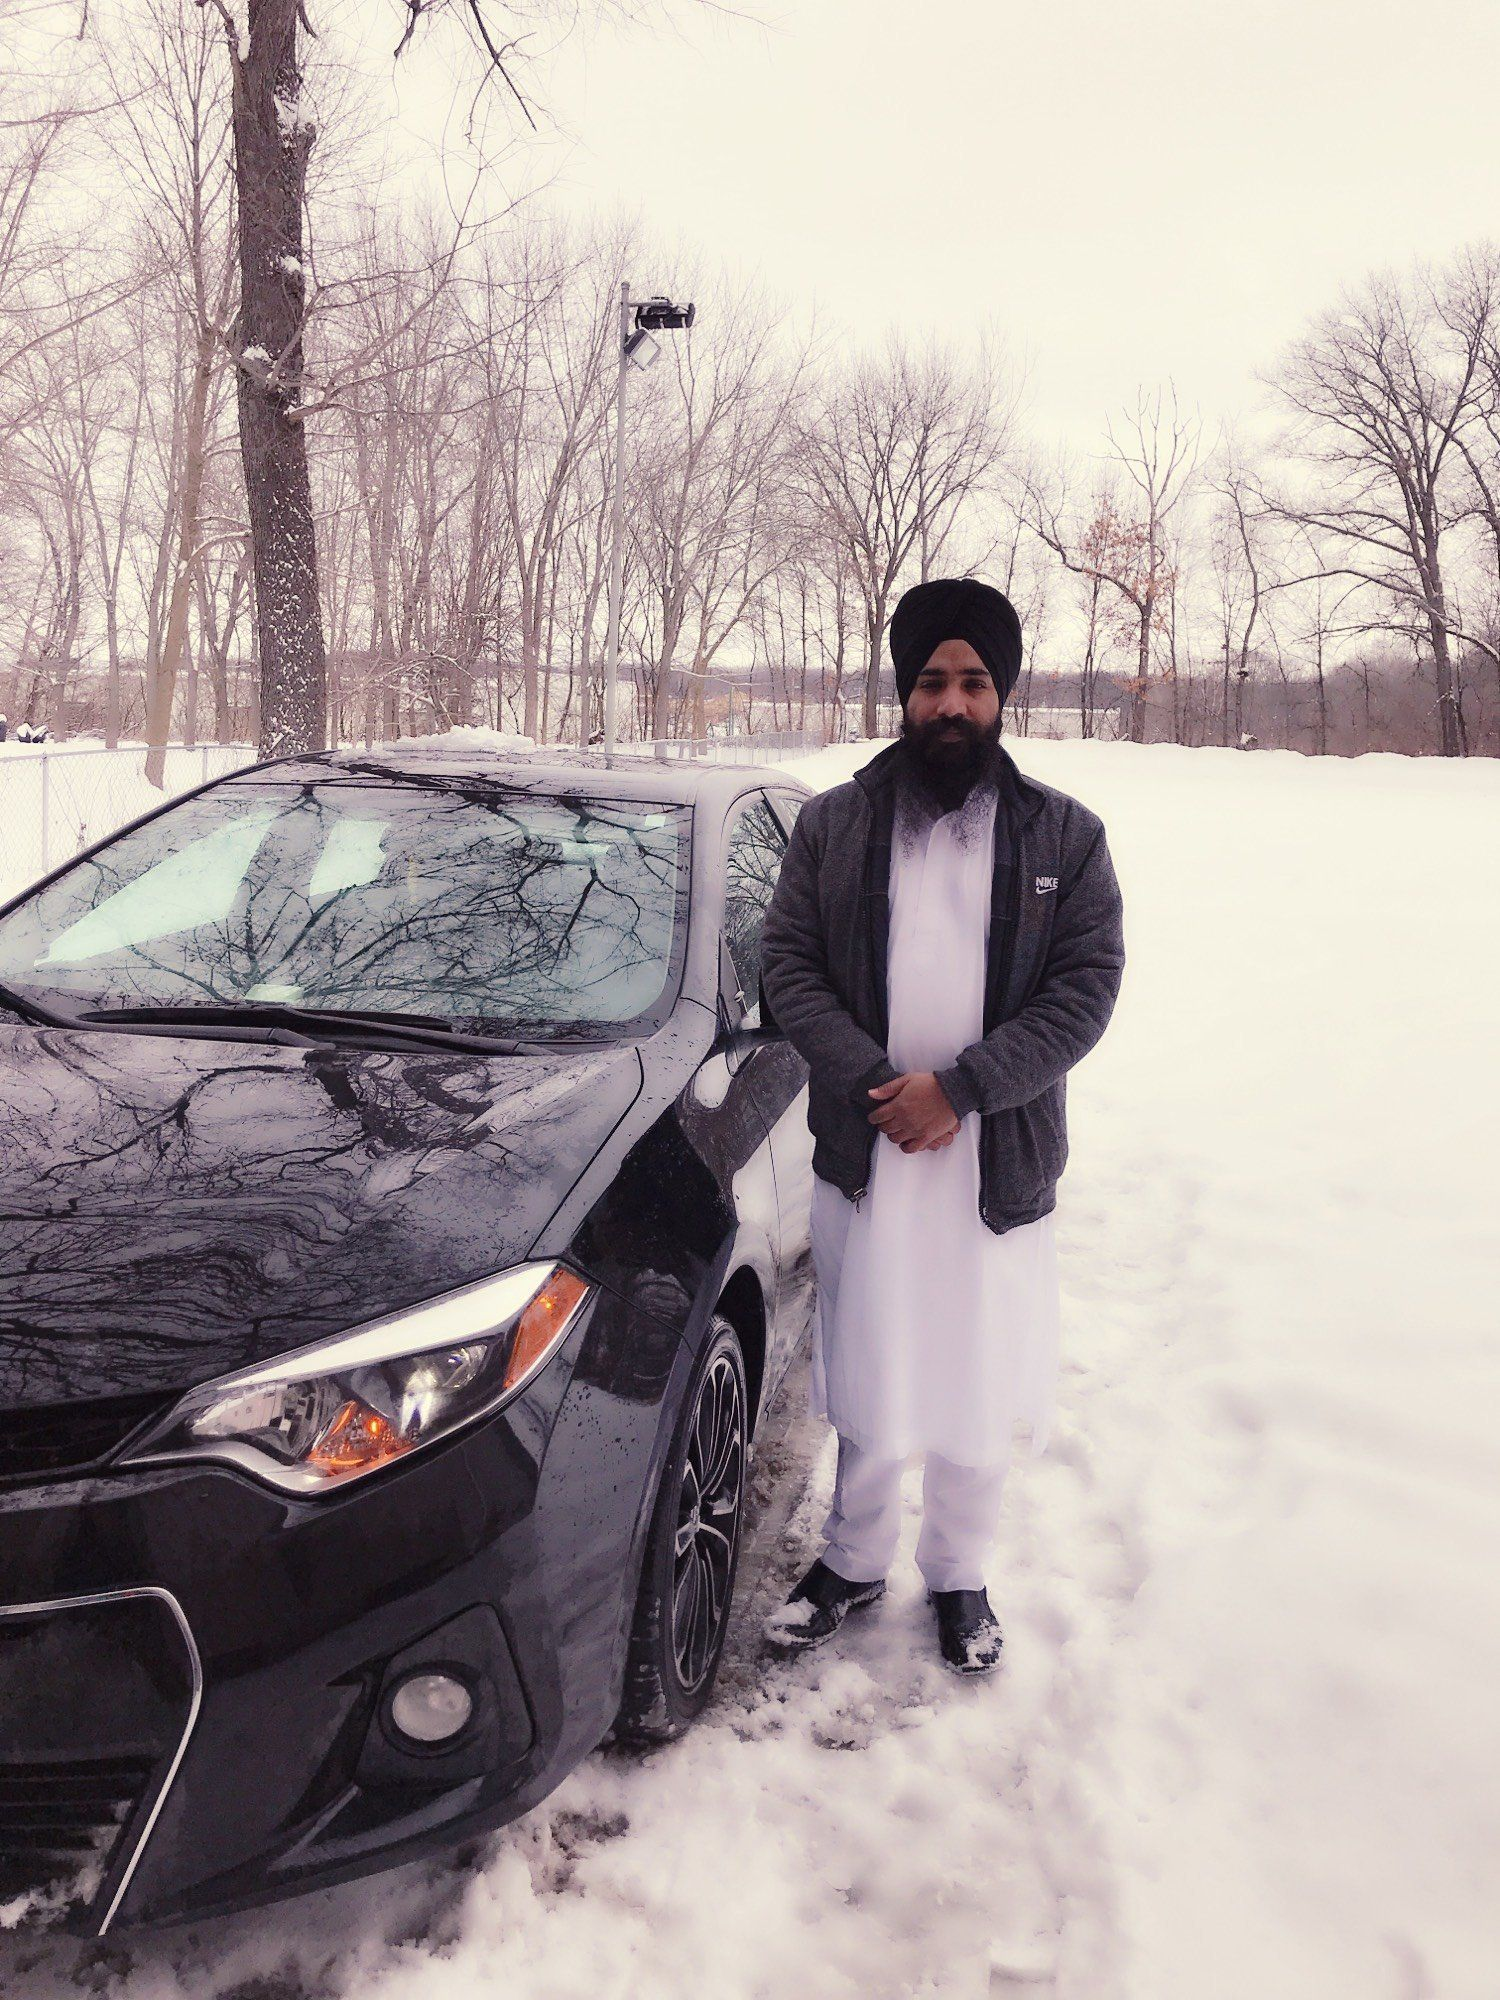 Gurjeet Singh, a Sikh religious leader from Illinois, claims he was assaulted while driving for Uber...